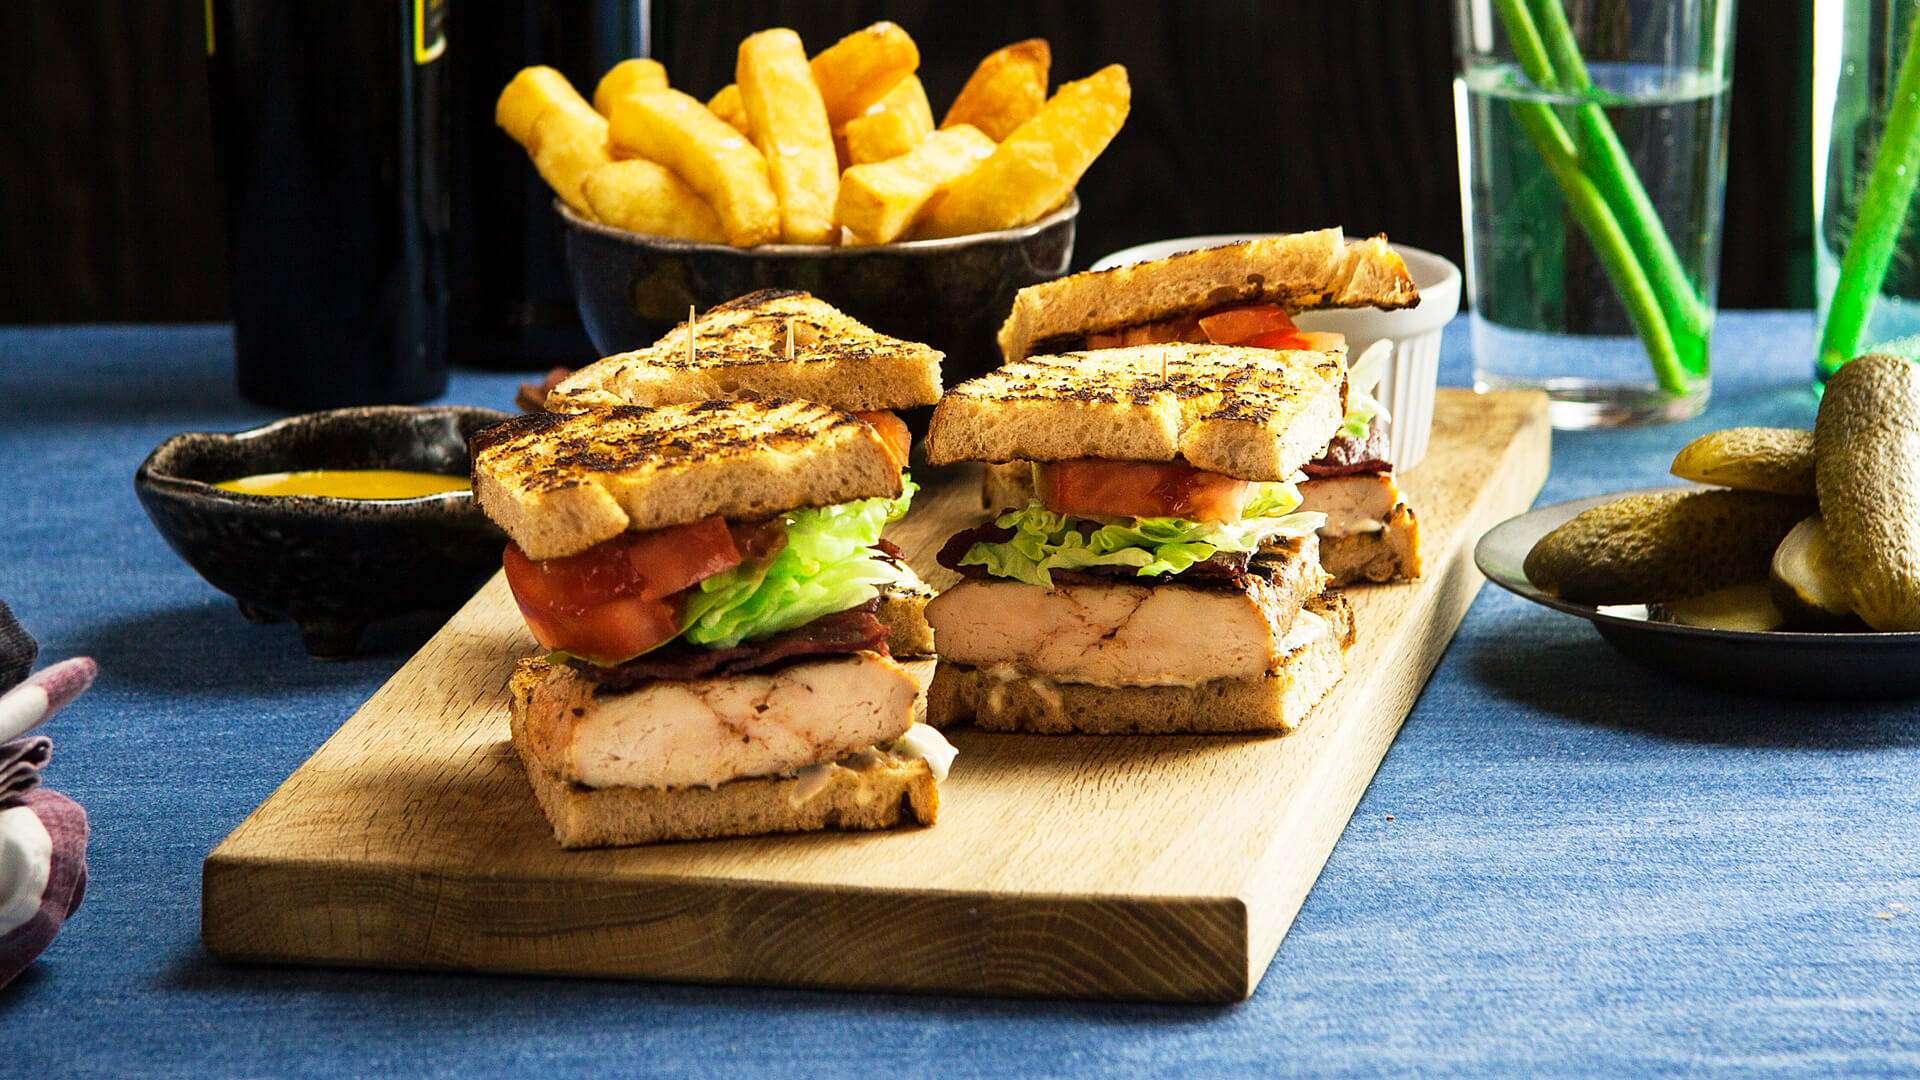 Bbq-Chicken Club Sandwich